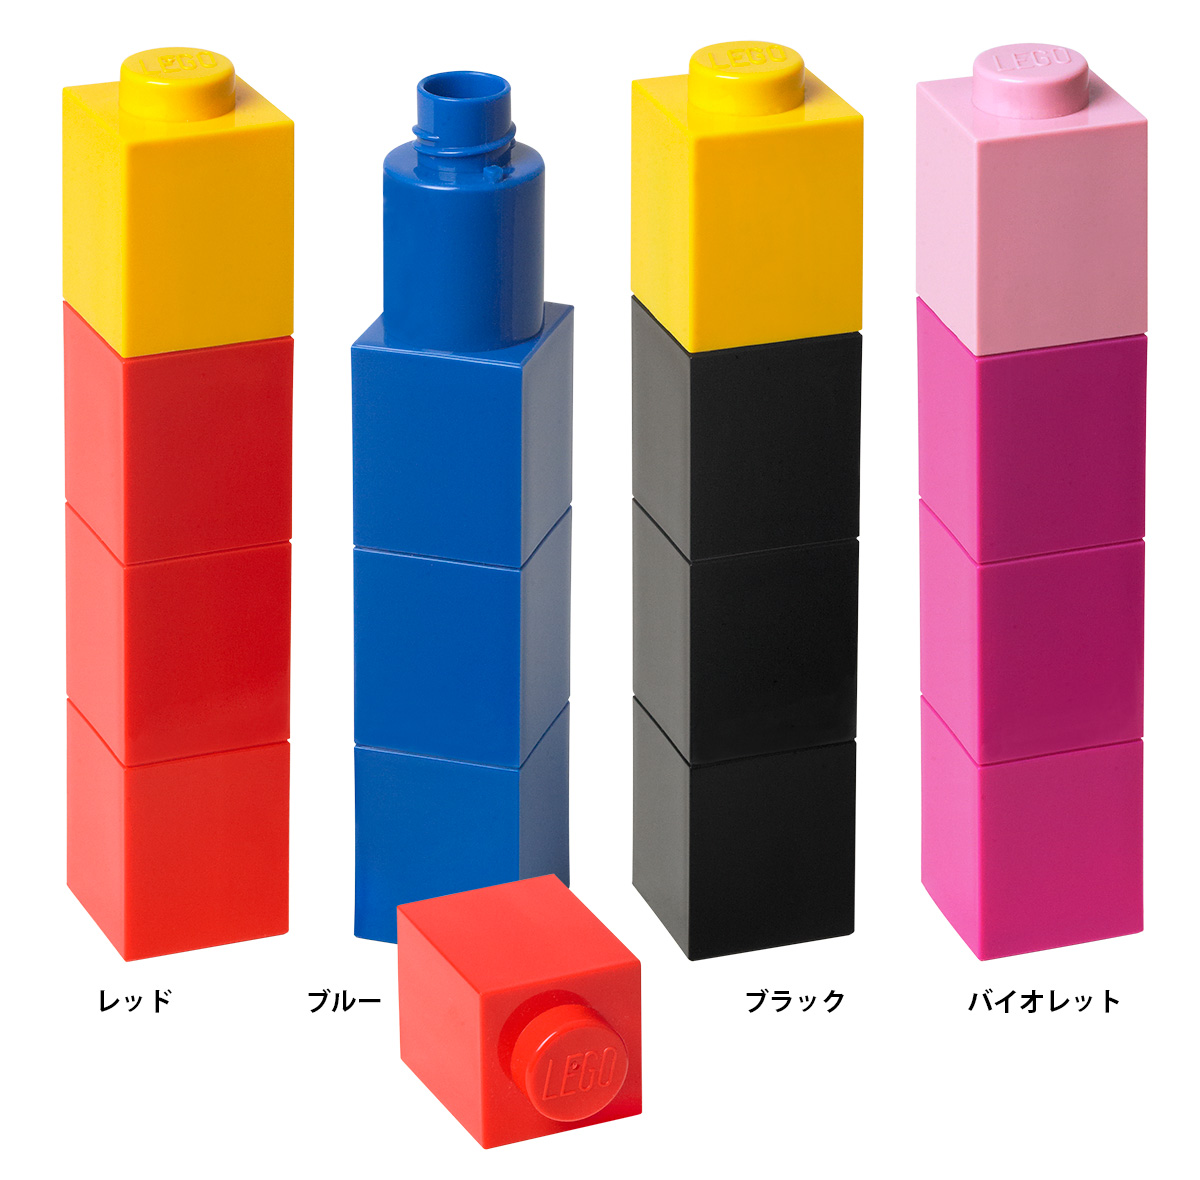 LEGO drinking bottle 400 ml / LEGO fs4gm